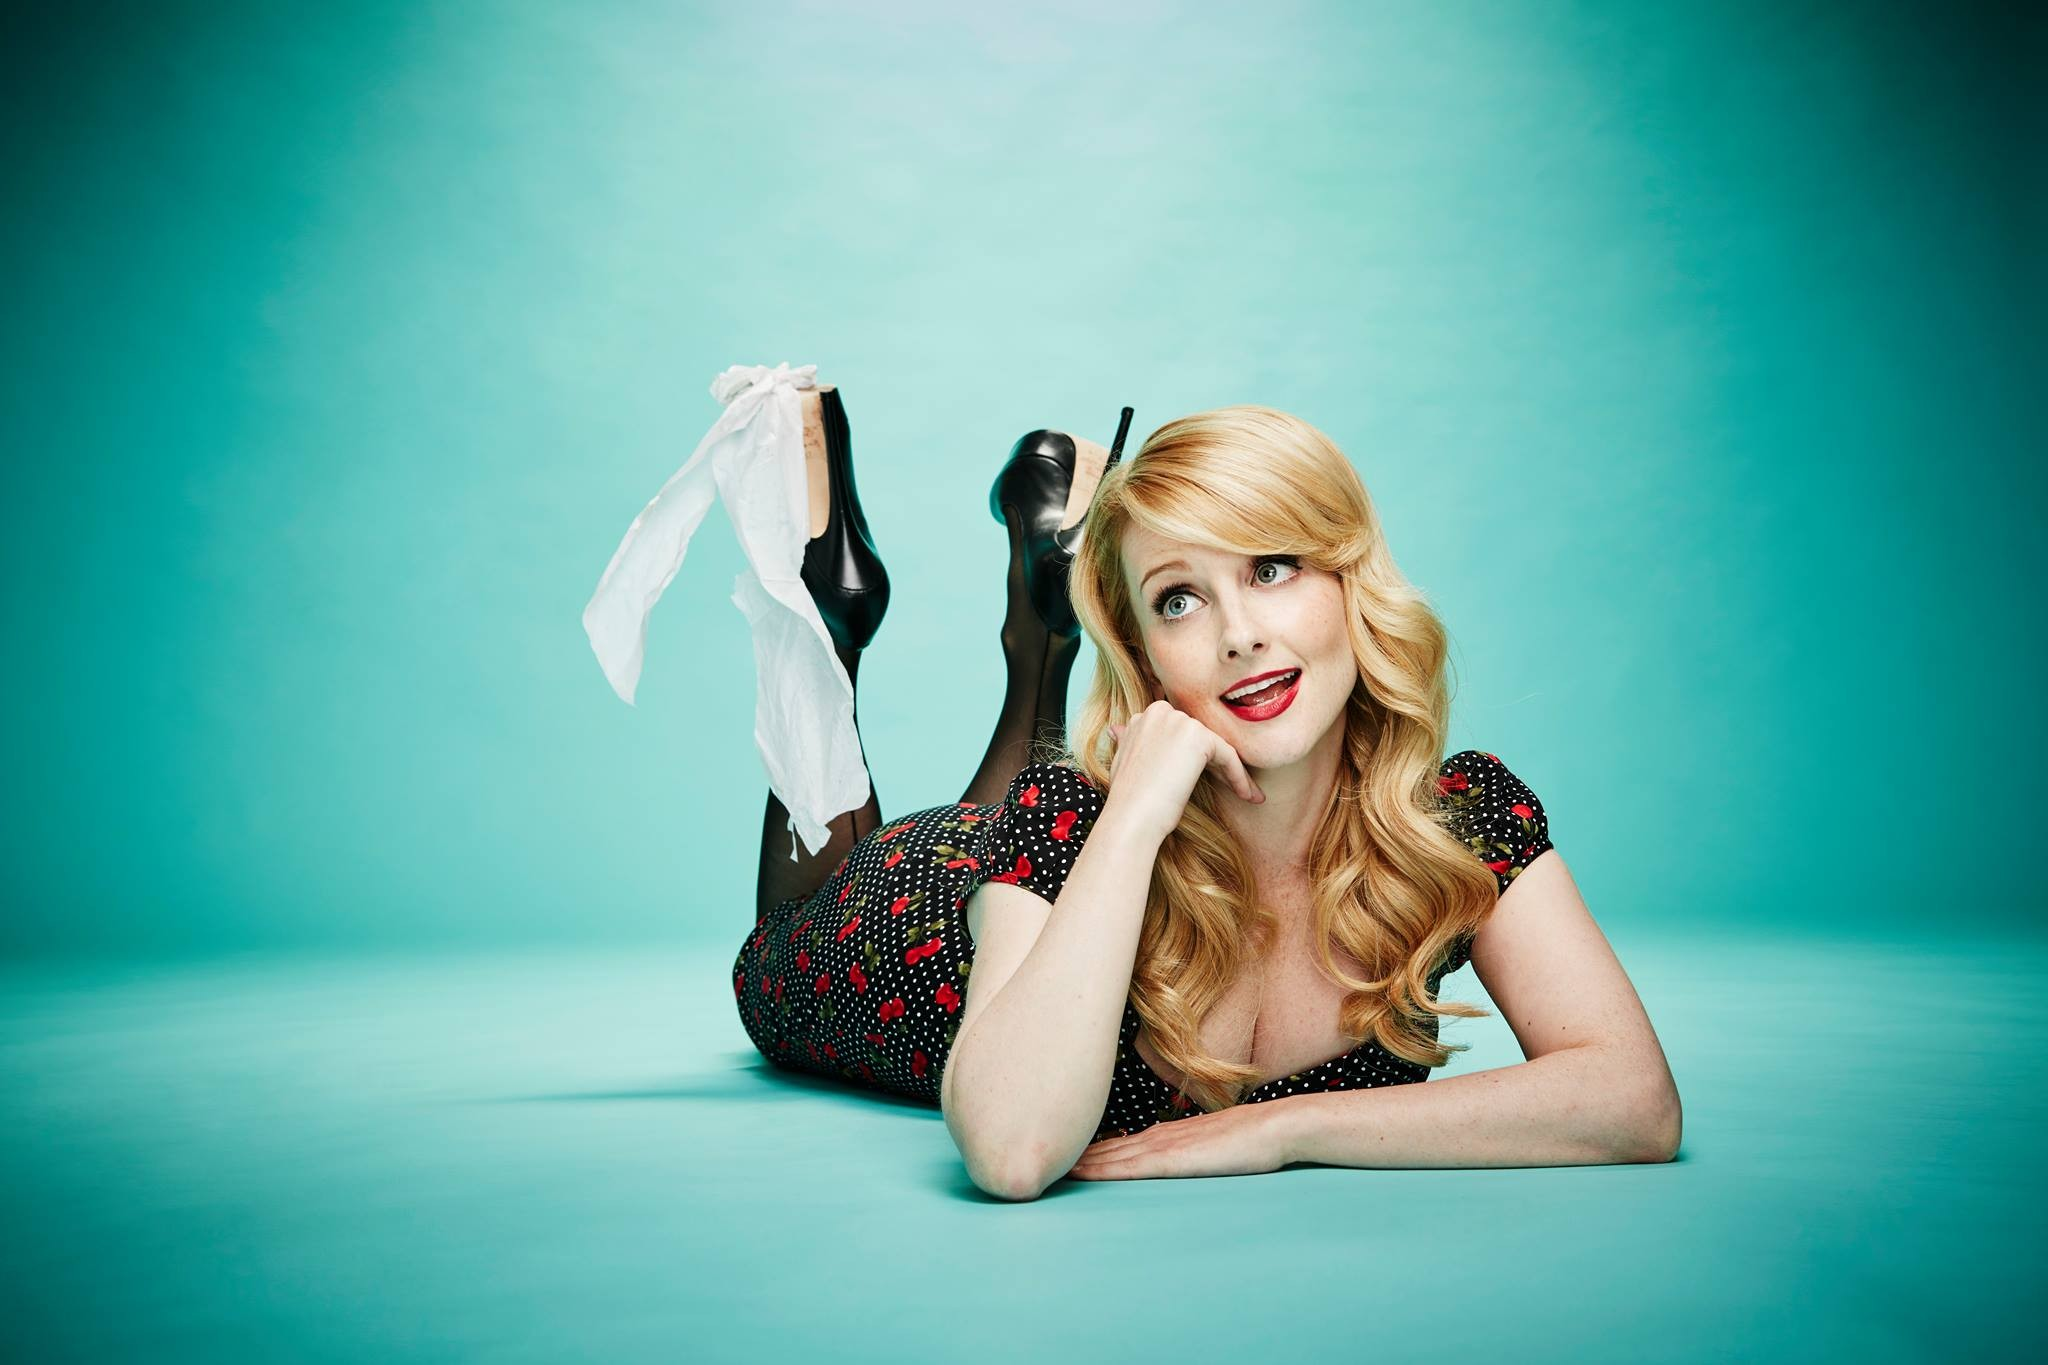 Melissa Rauch Nude Naked Pics And Videos Imperiodefamosas